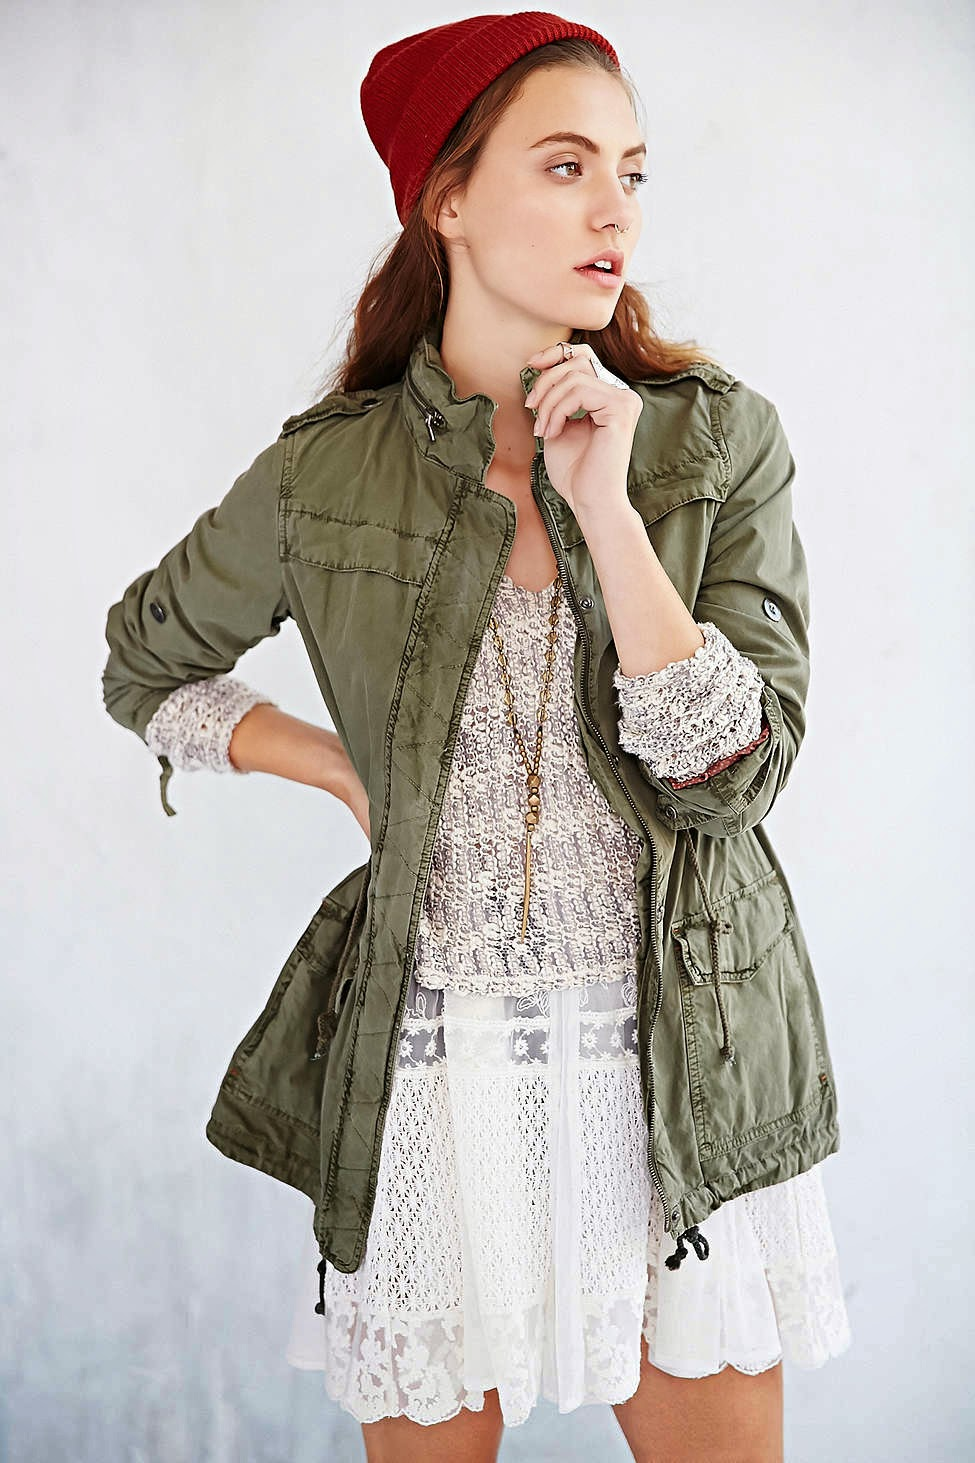 Levis green army jacket, Levi cargo green parka, Urban Outfitters army coat for fall, best green army jacket 2014